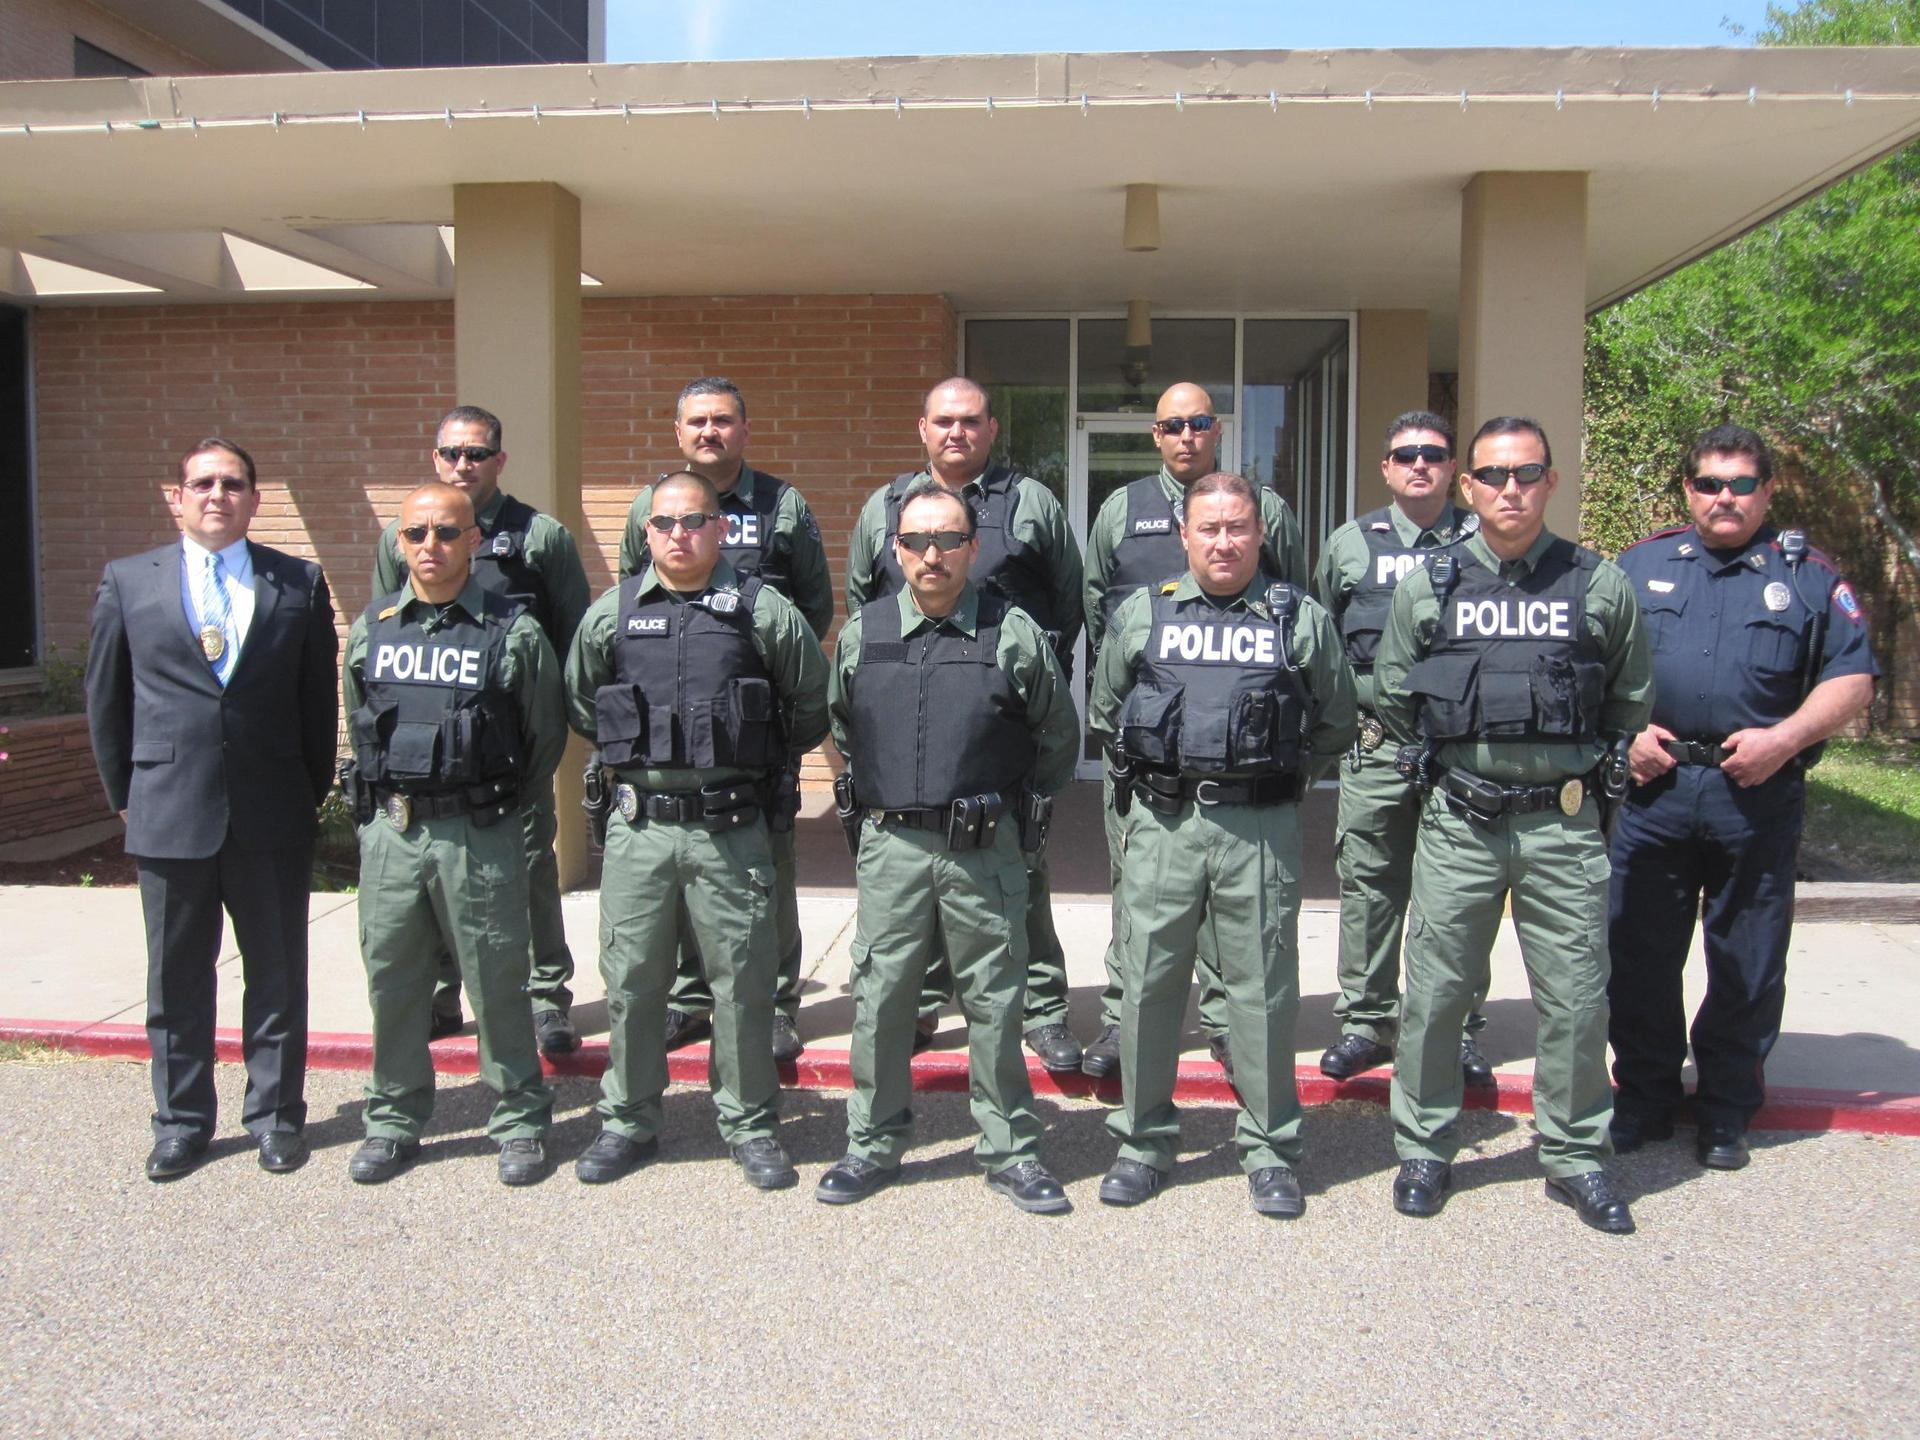 Special Weapons and Tactics Special Response Team group picture